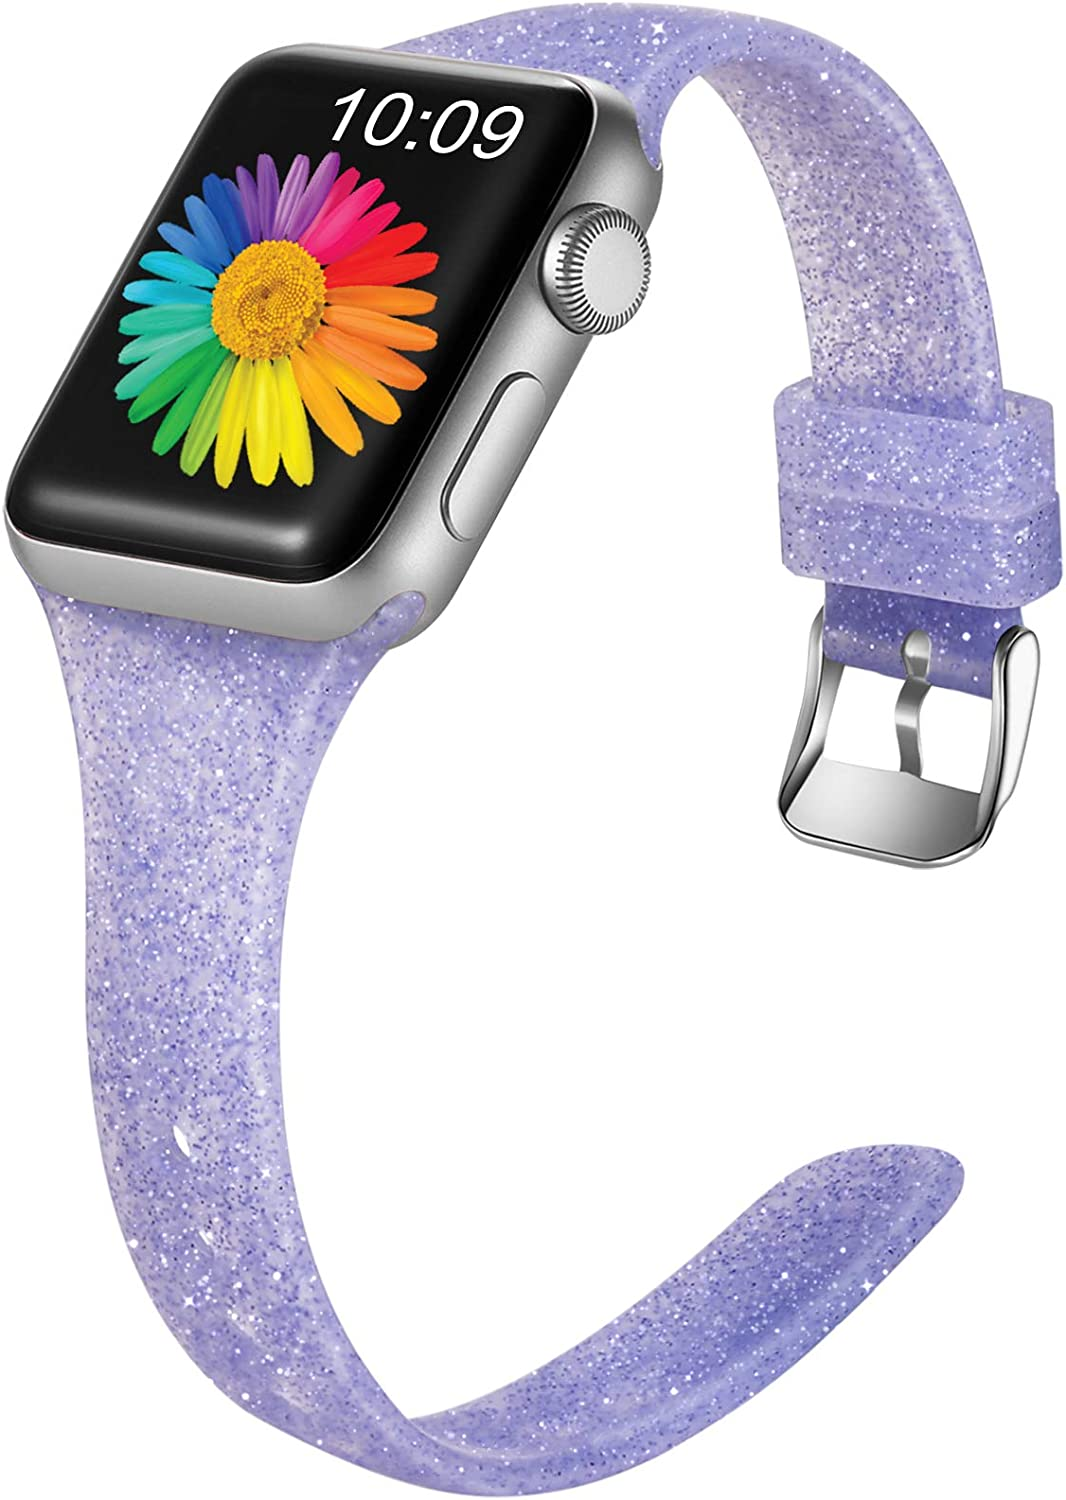 Getino Glitter Band Compatible with Apple Watch 40mm 38mm iWatch SE & Series 6 & Series 5 4 3 2 1, Soft Silicone Slim Sport Bands for Women Girls Kids, Shiny Purple, S/M